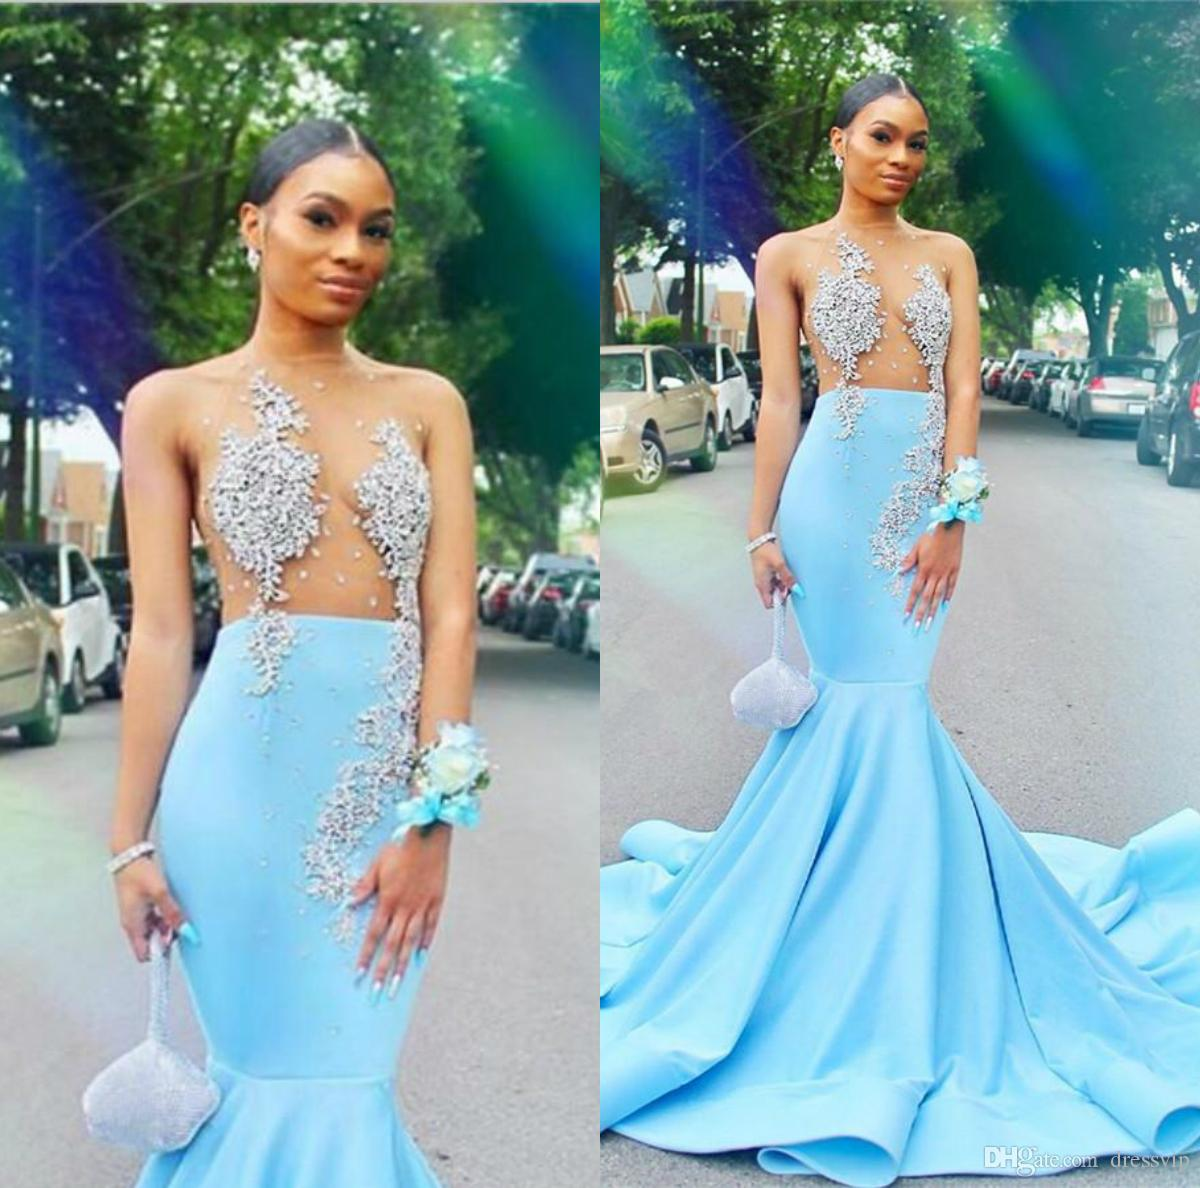 Sexy See Through Mermaid Prom Dresses For Black Girls Appliques Beads Sheer Top Sky Blue Long Evening Gowns Plus Size Women Dress